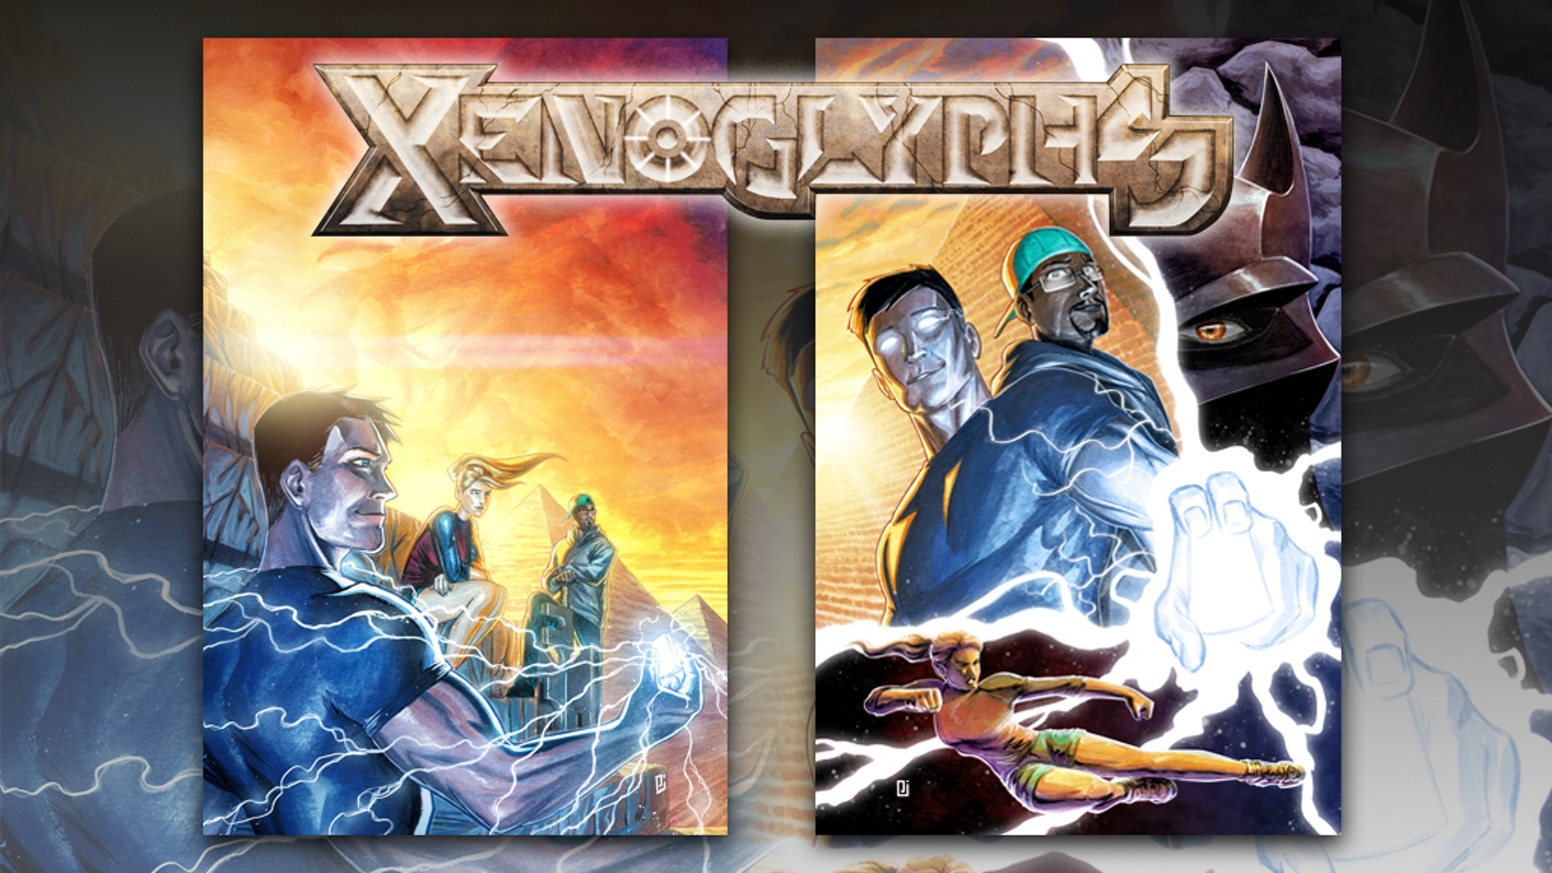 Xenoglyphs is a comic book adventure series about five heroes searching out nine elemental stones with the power to change the world.